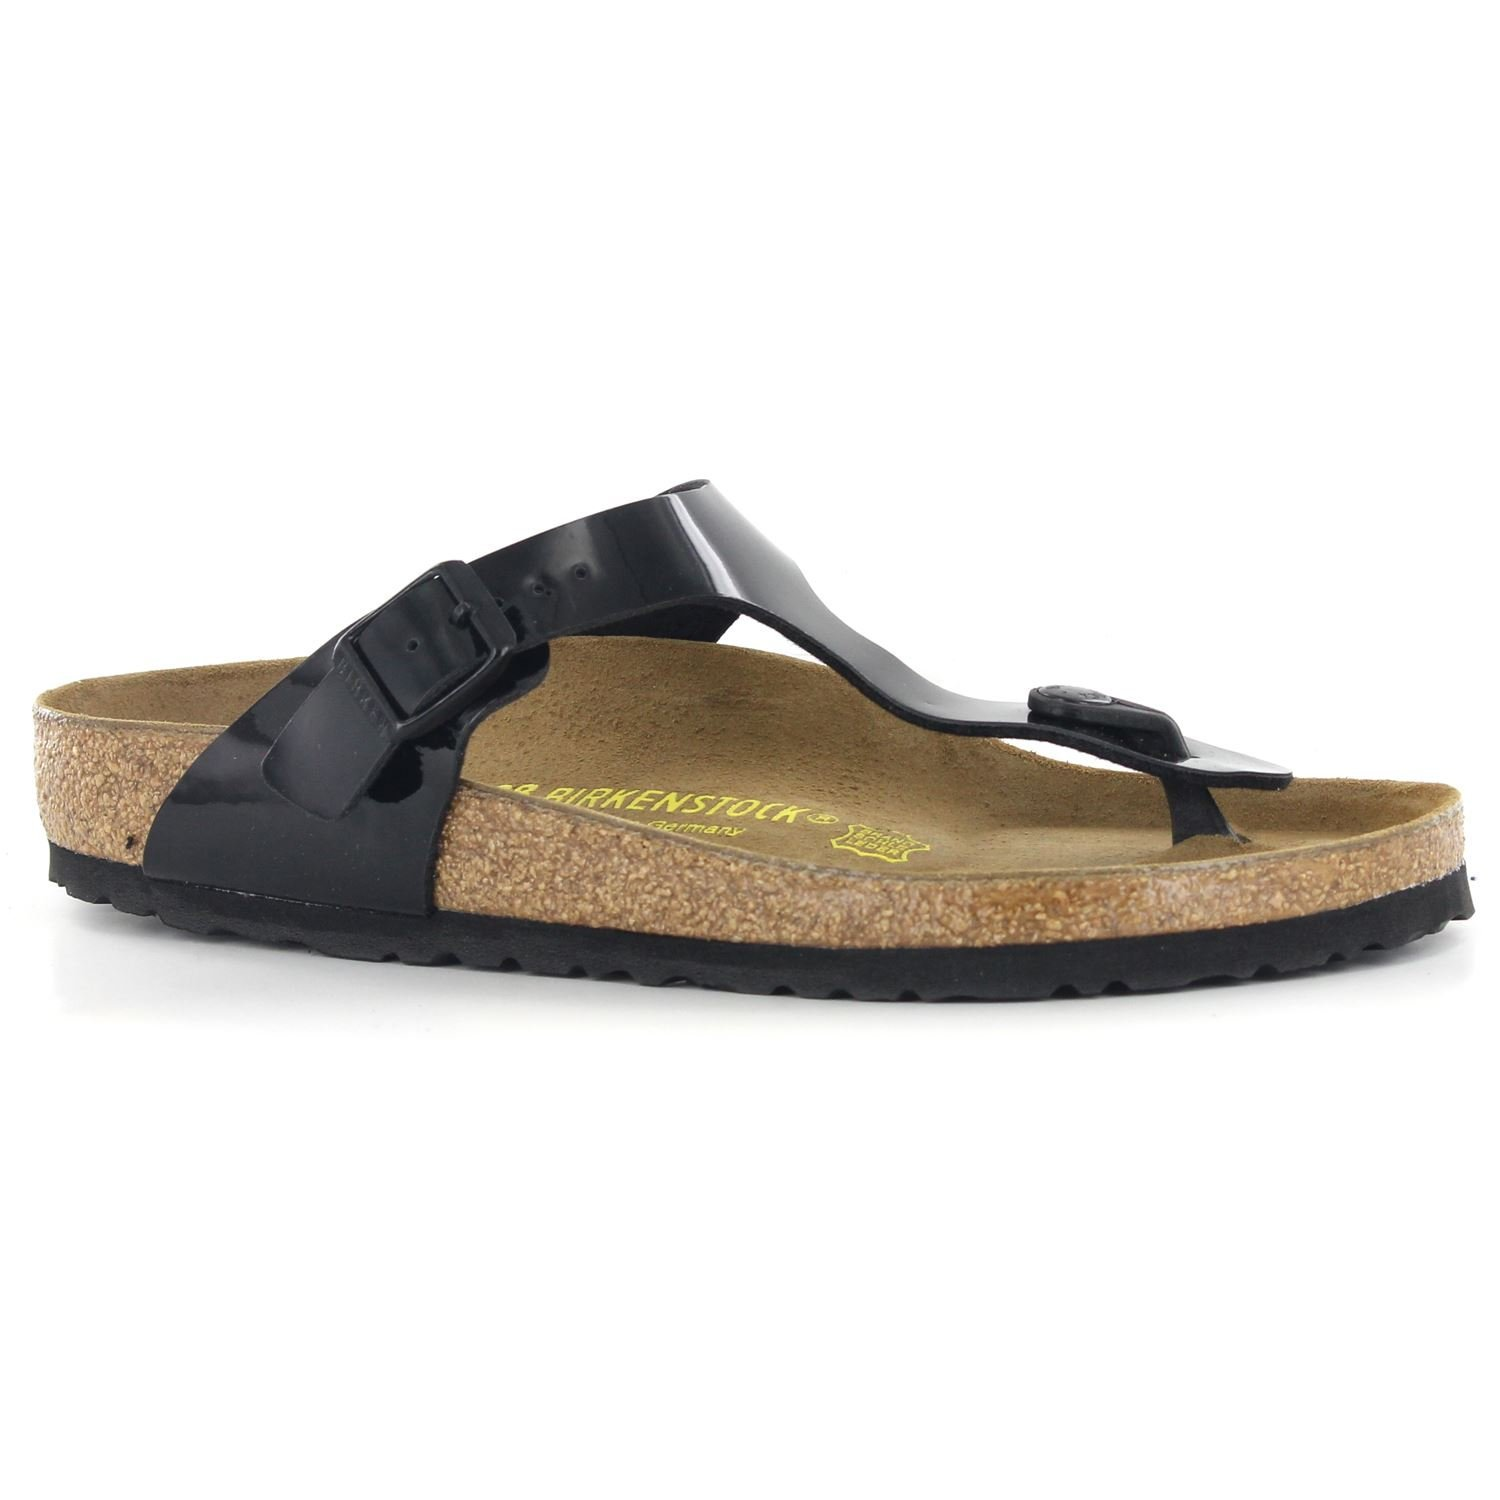 93153ae840e Galleon - Birkenstock Womens Gizeh Black Patent Regular Fit Toe Post Sandals  Size 7